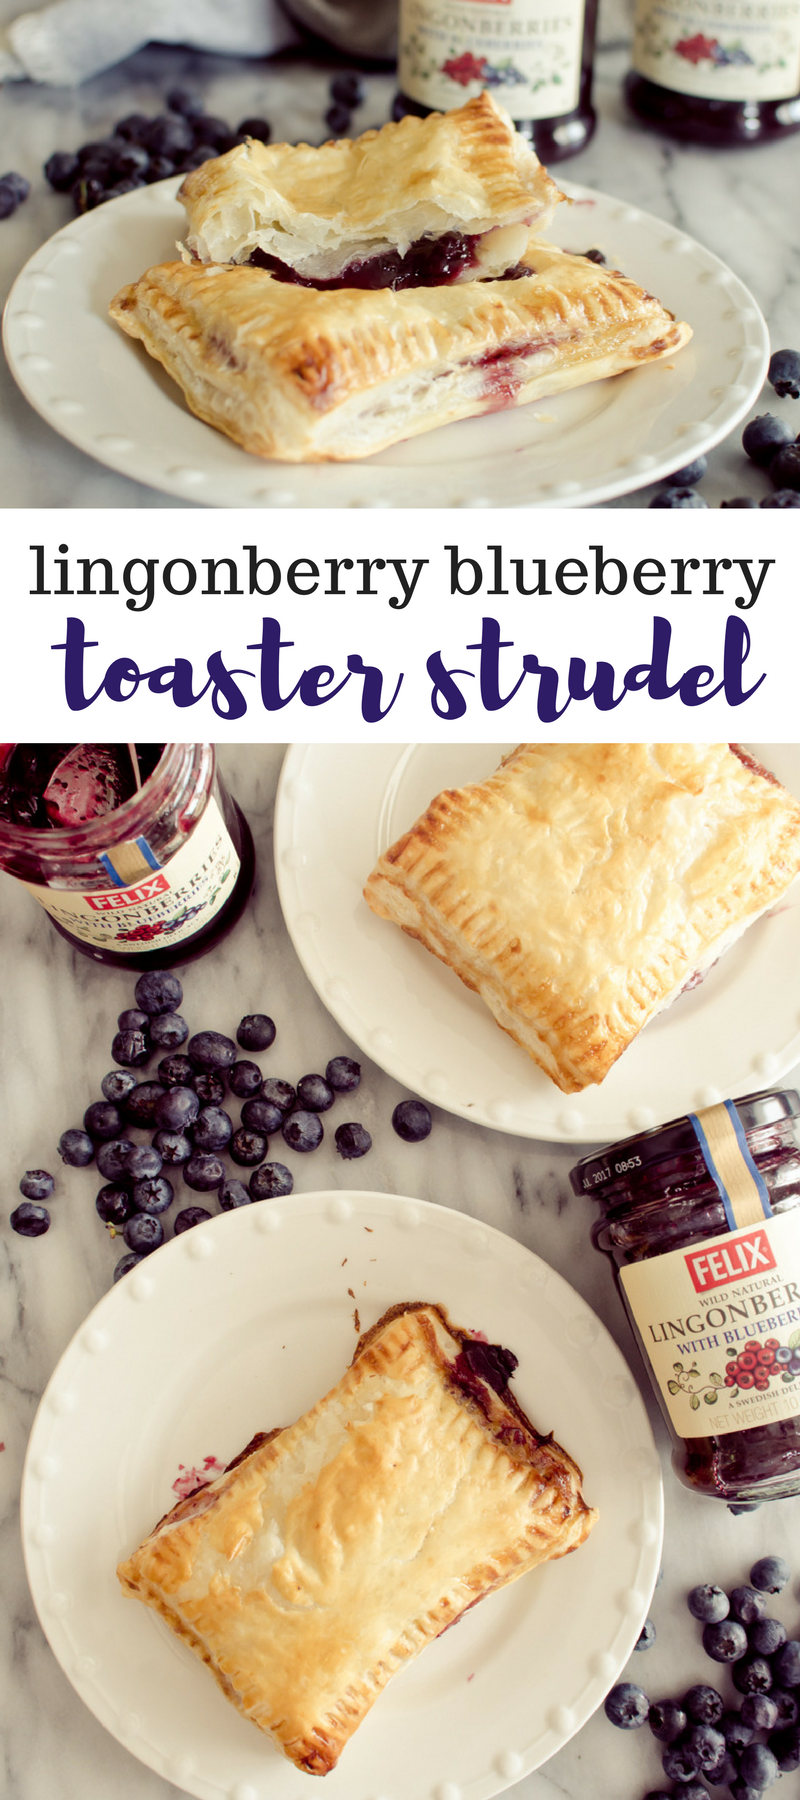 lingonberry-blueberry-toaster-strudel-2